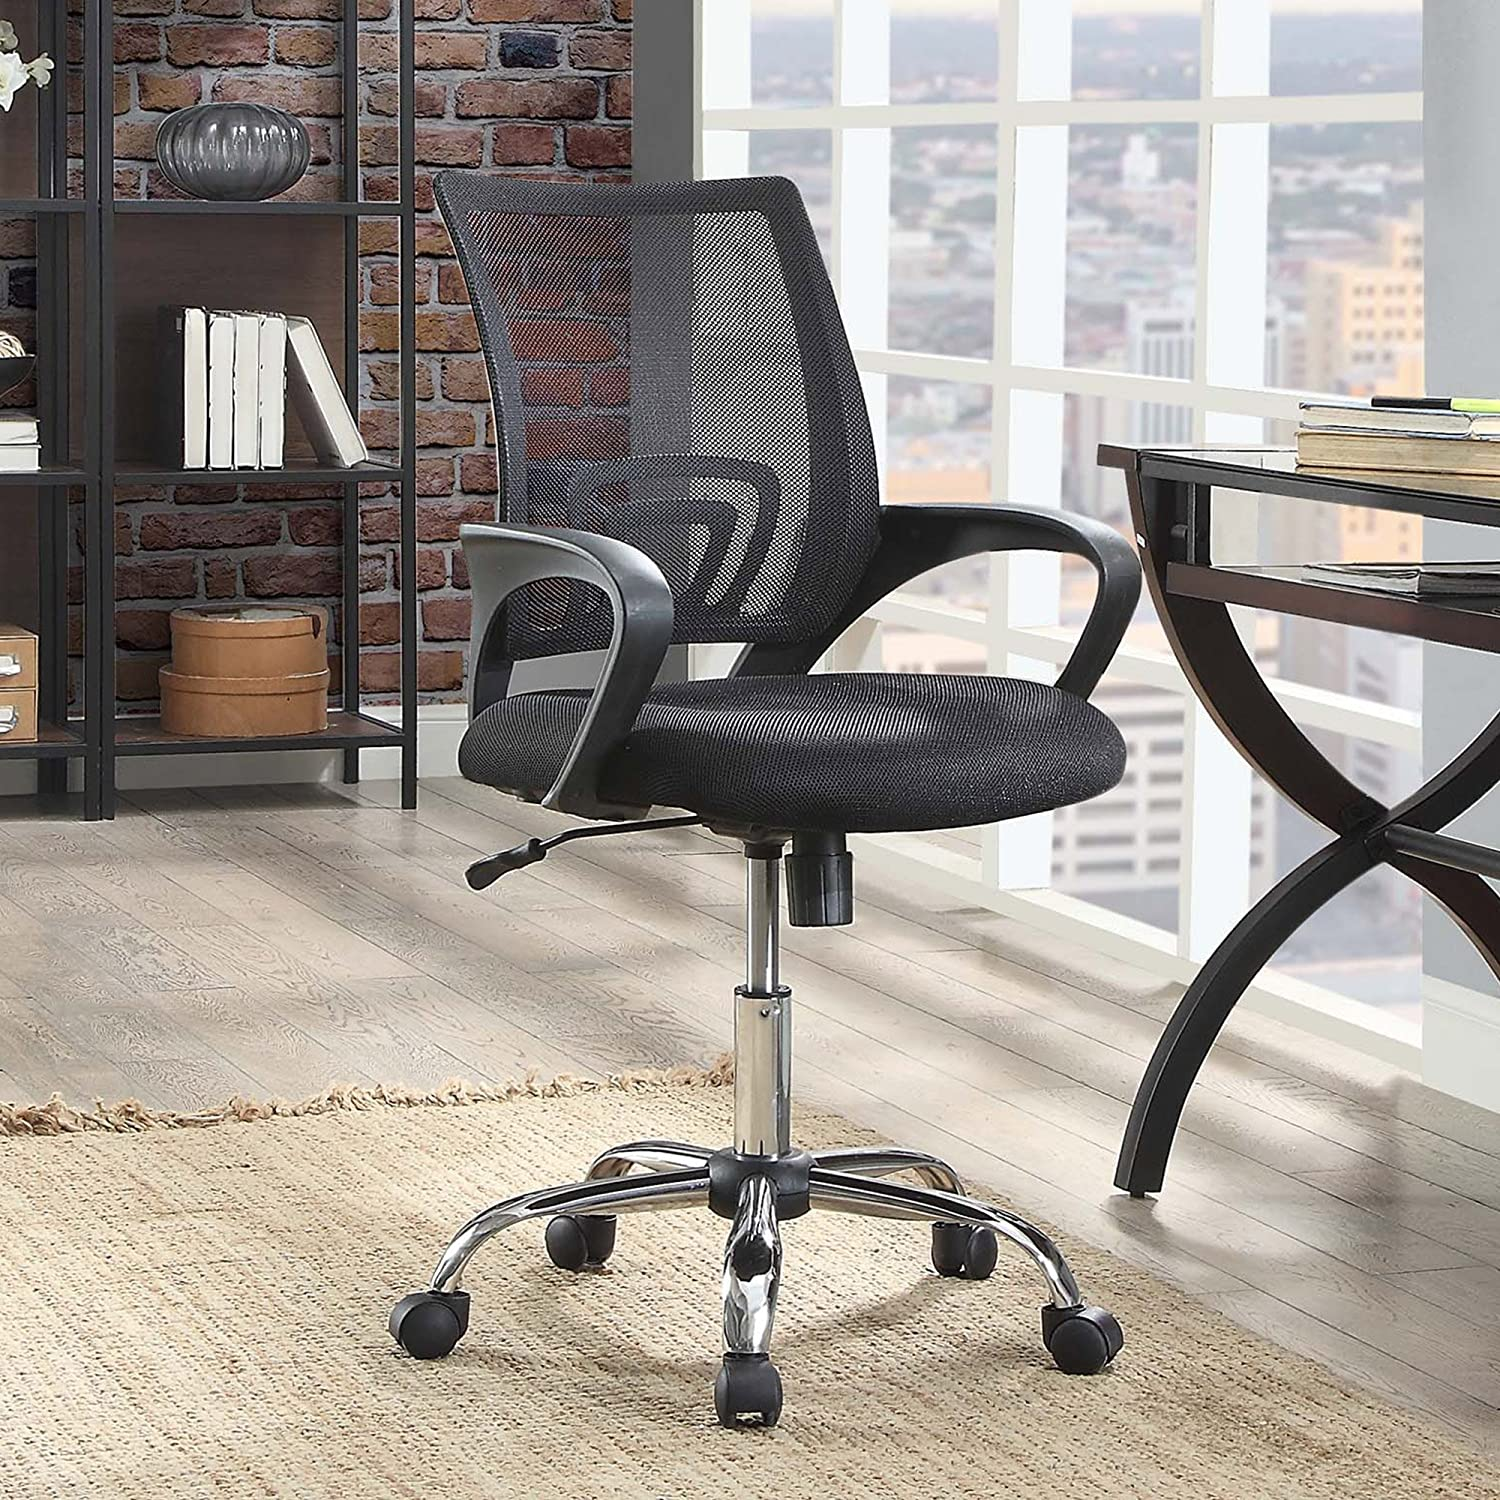 Amazon Com Mainstays Mesh Office Chair With Arms Furniture Decor